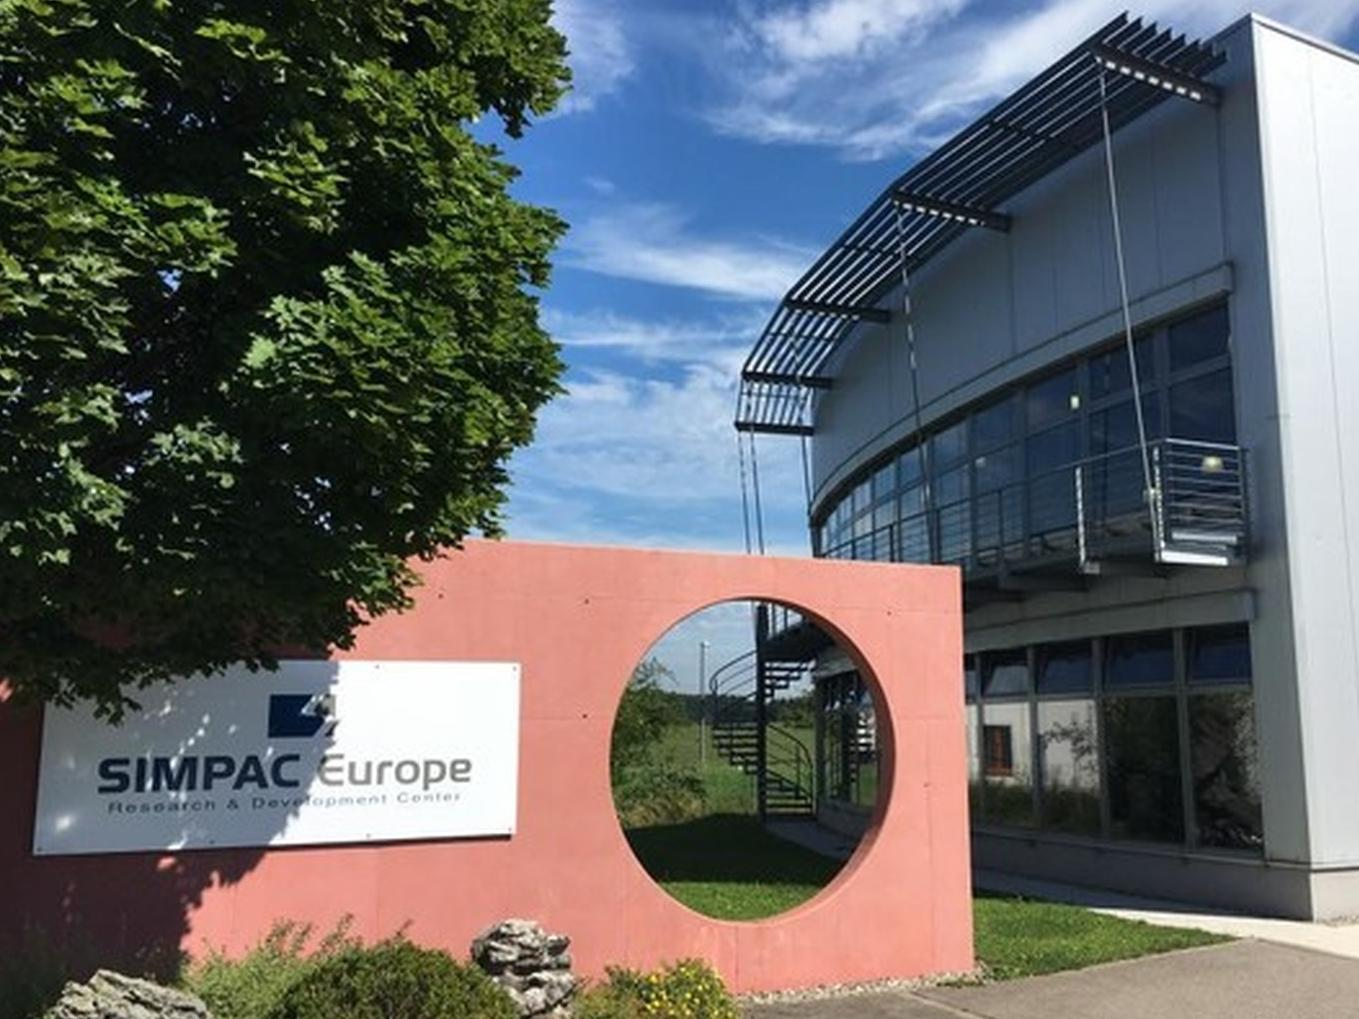 Firmensitz der Simpac Europe GmbH in Bodnegg am Bodensee.